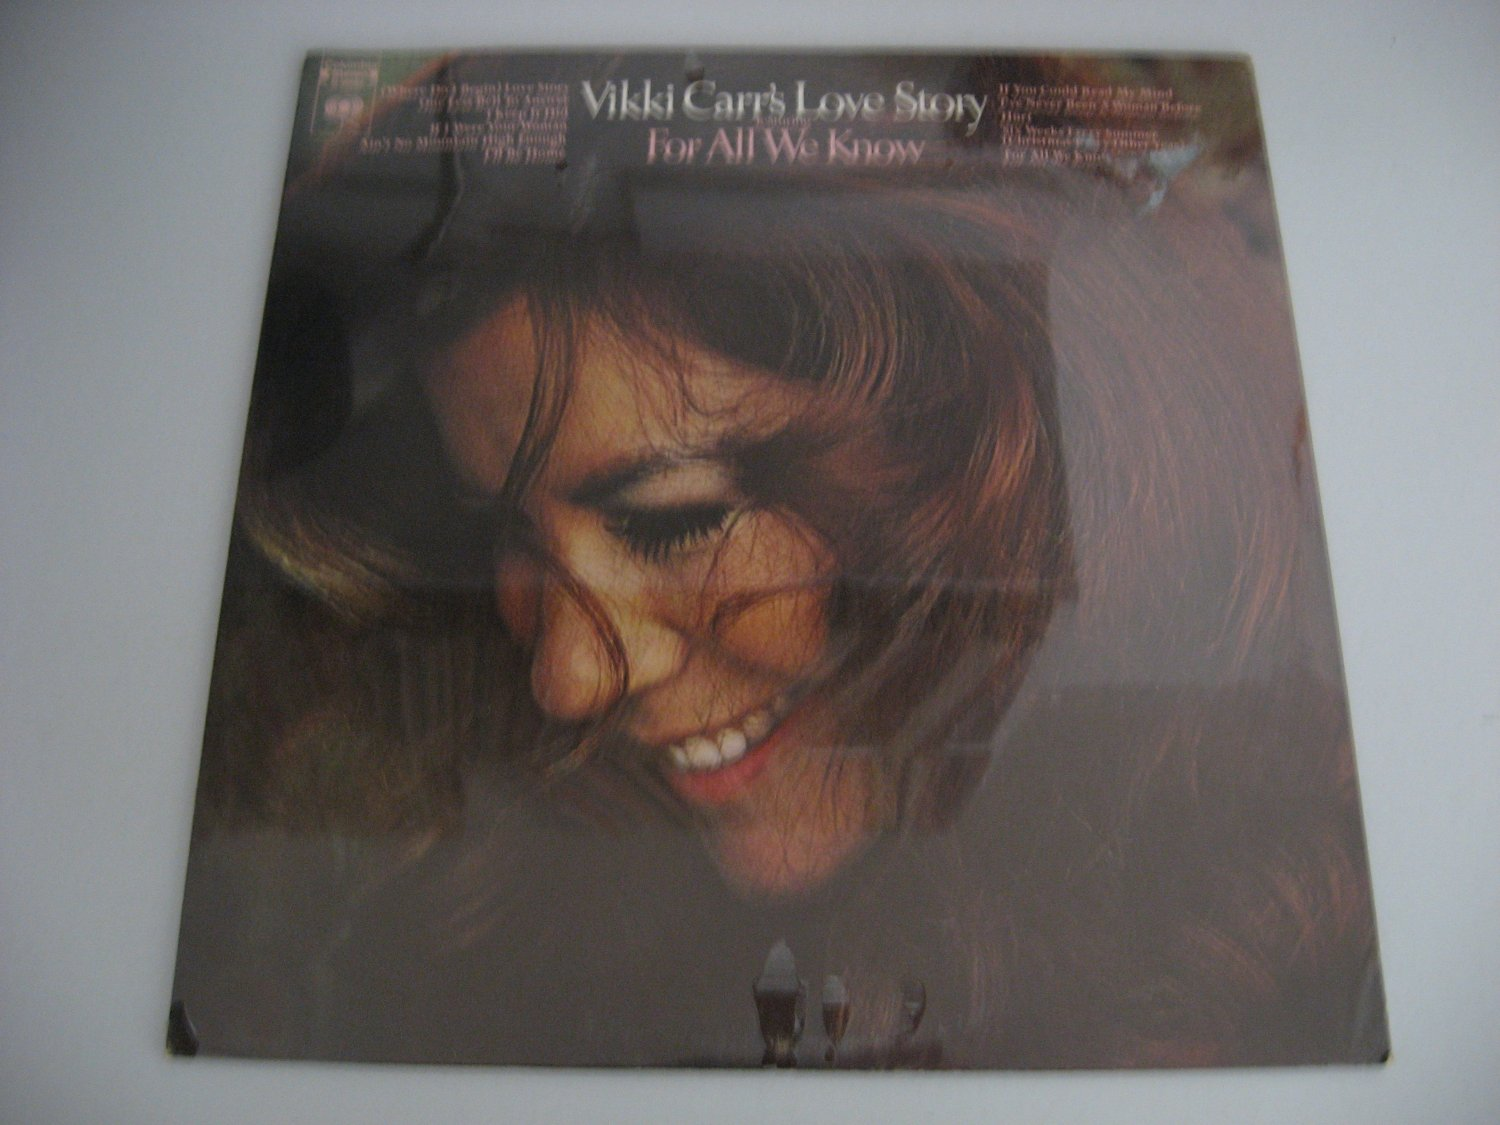 NEW! Factory Sealed - Vikki Carr - Love Story - Circa 1977